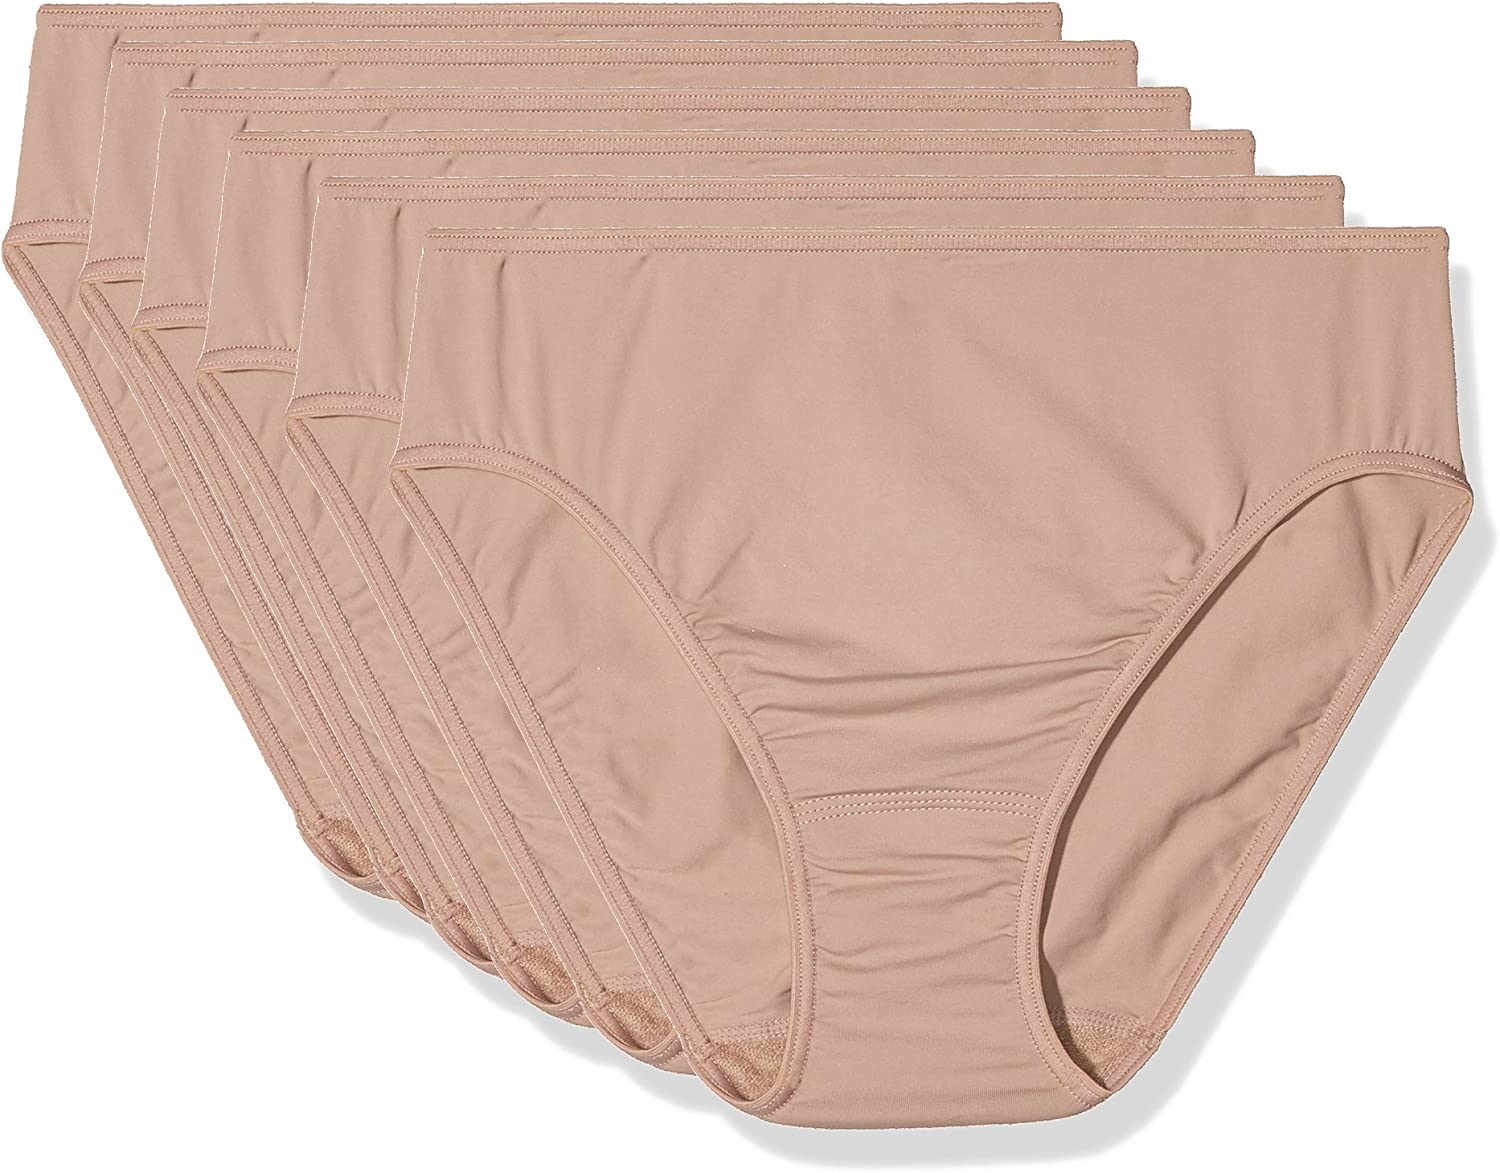 AVET Braga Punto Liso Soft Touch Pack 6, Mujer: Amazon.es: Ropa y accesorios